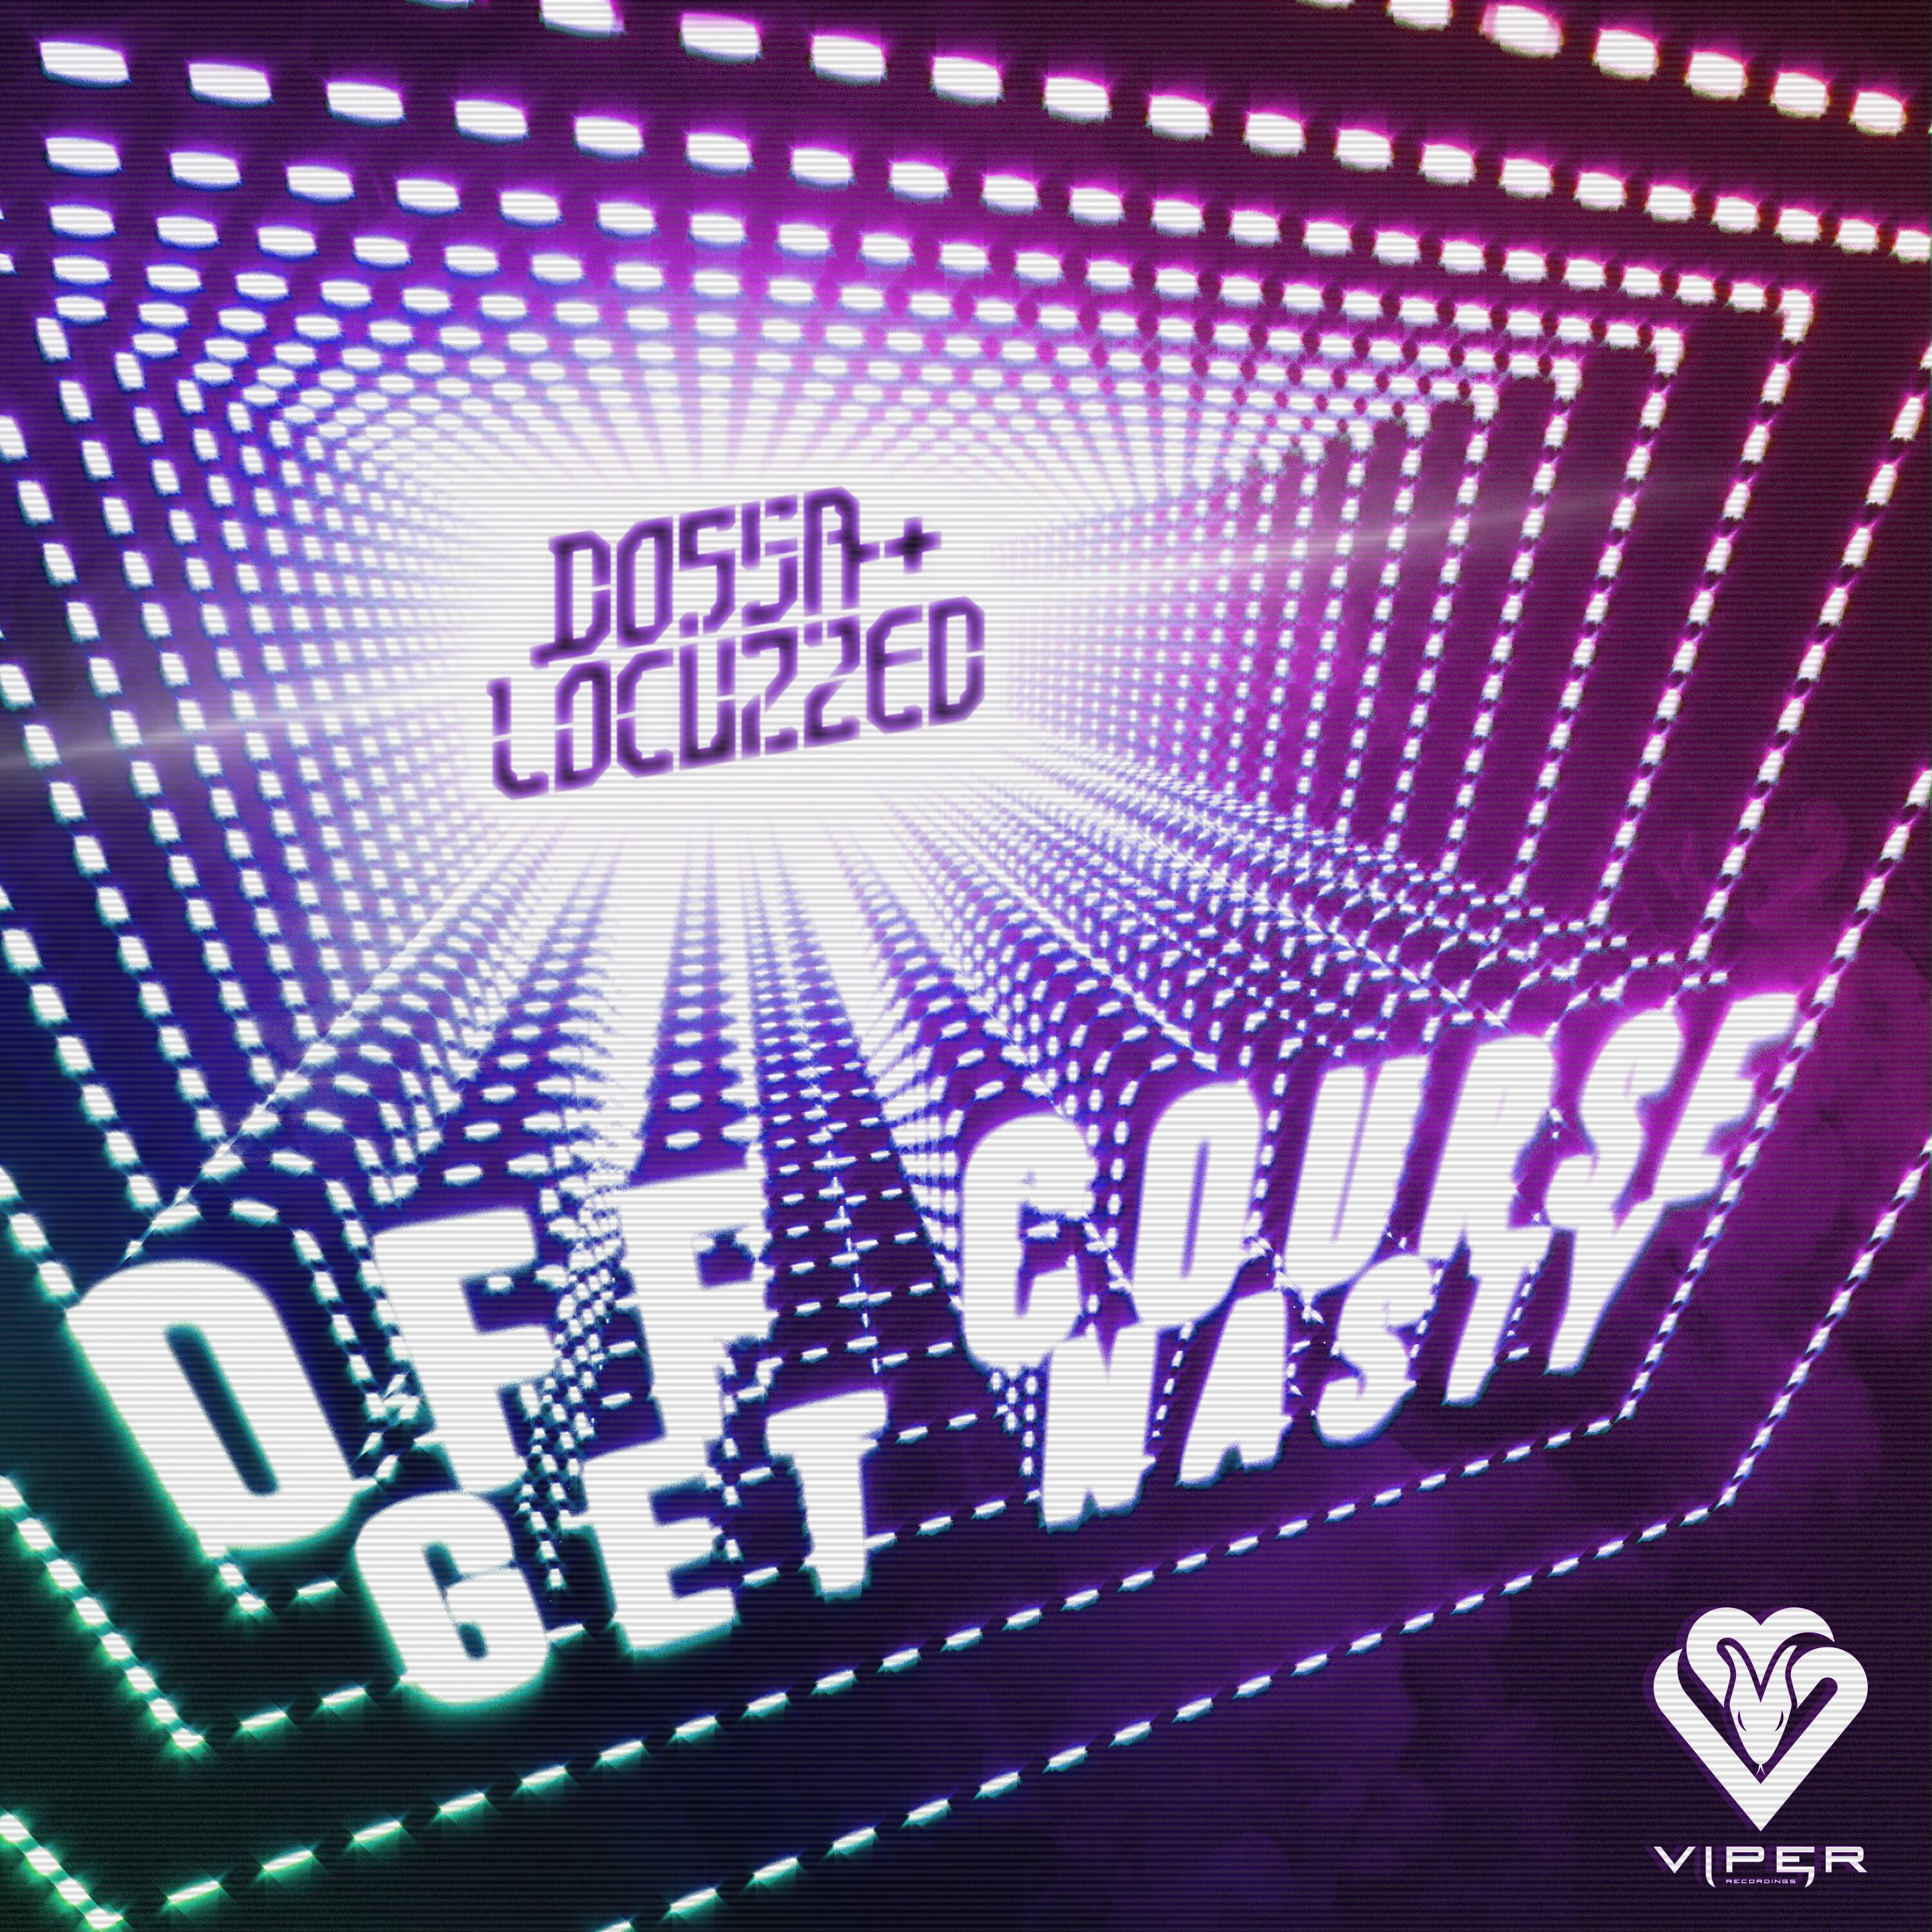 DOSSA & LOCUZZED – OFF COURSE / GET NASTY